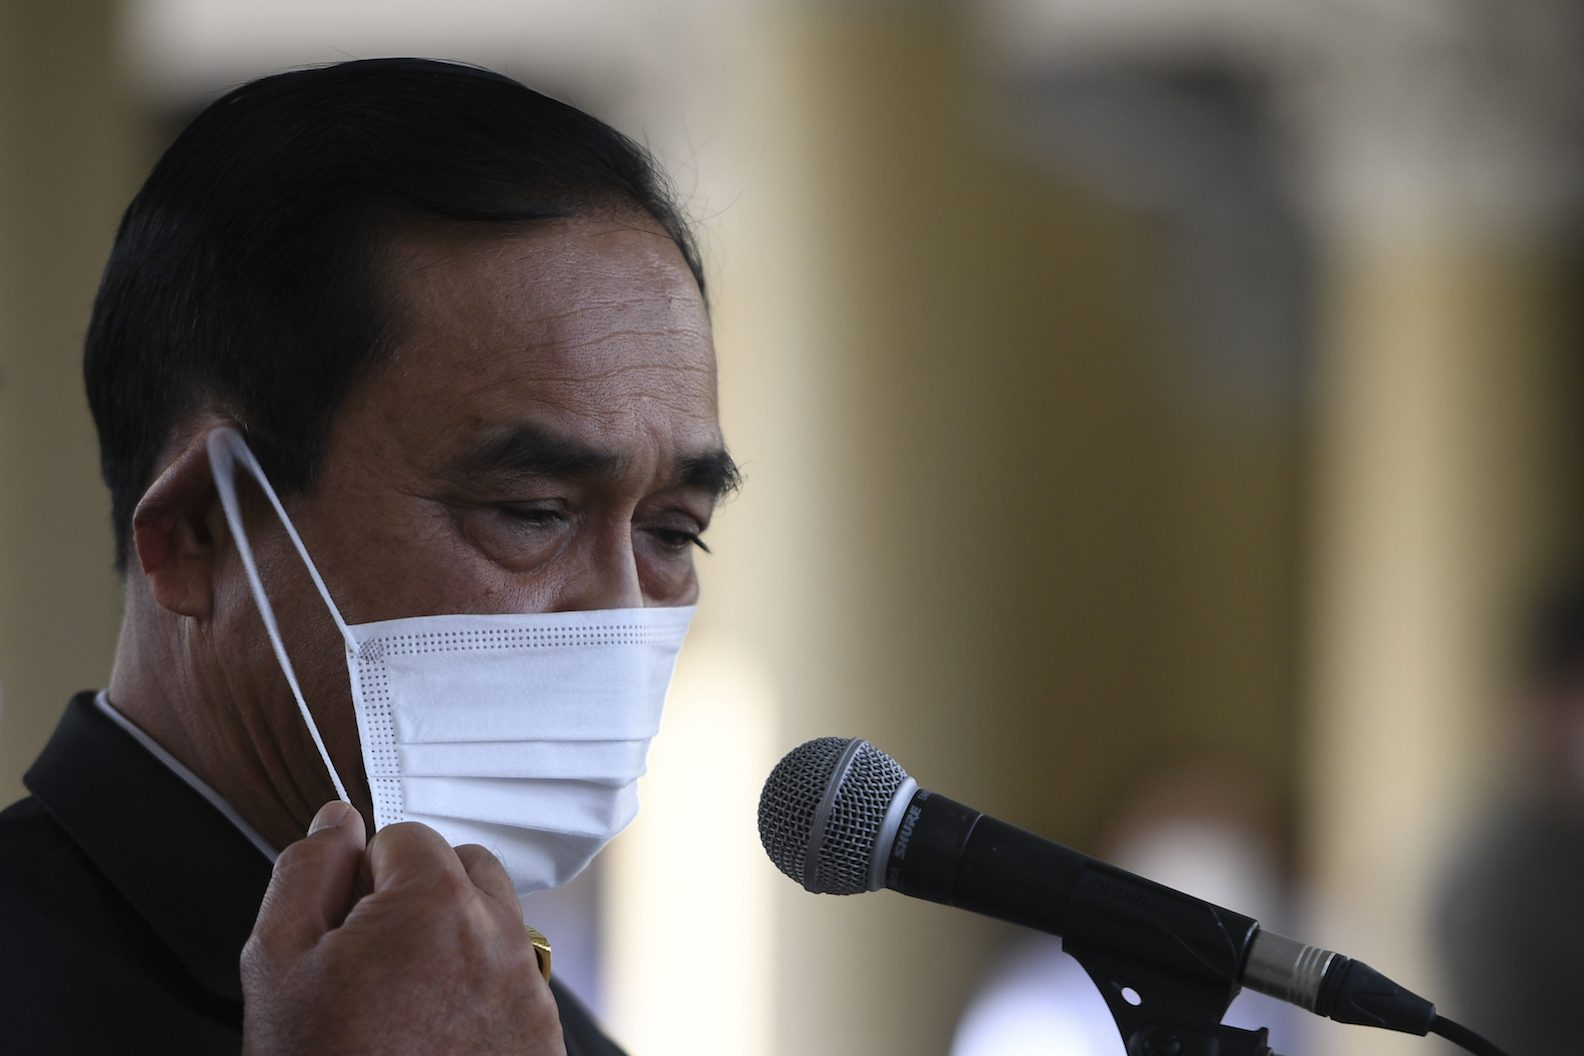 Plague and protest put Thailand on edge of panic